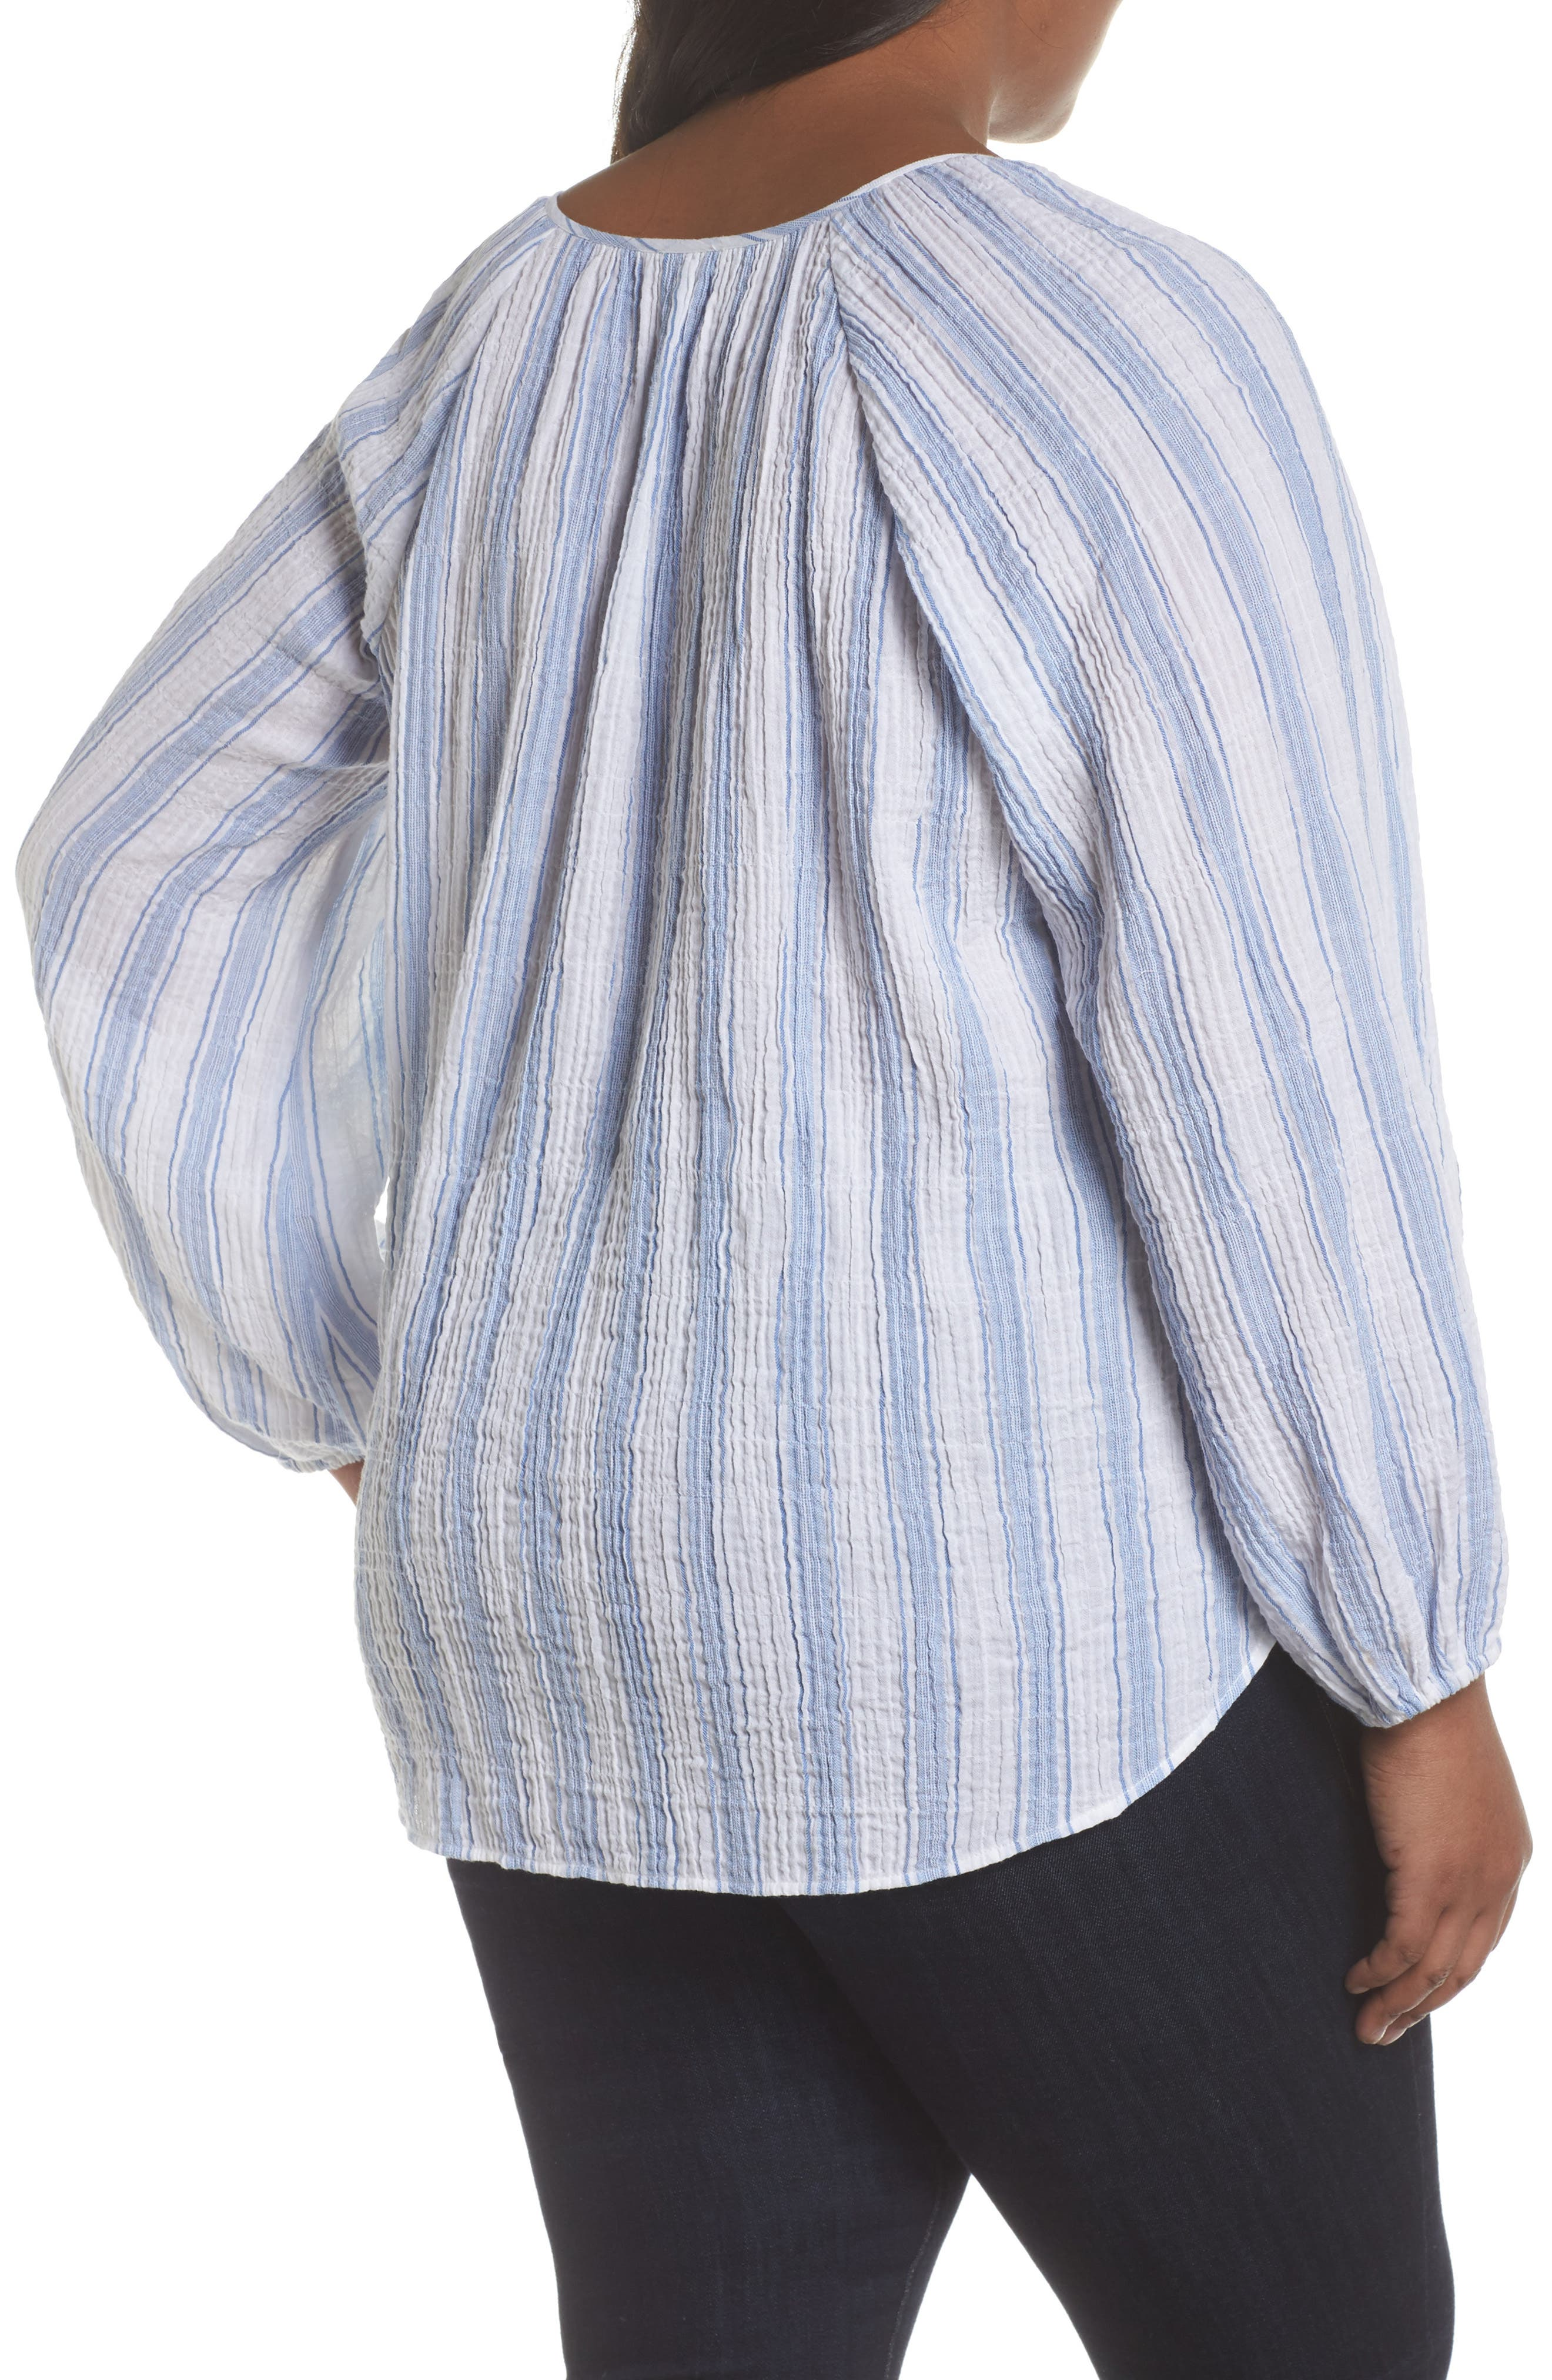 Embroidered Stripe Top,                             Alternate thumbnail 2, color,